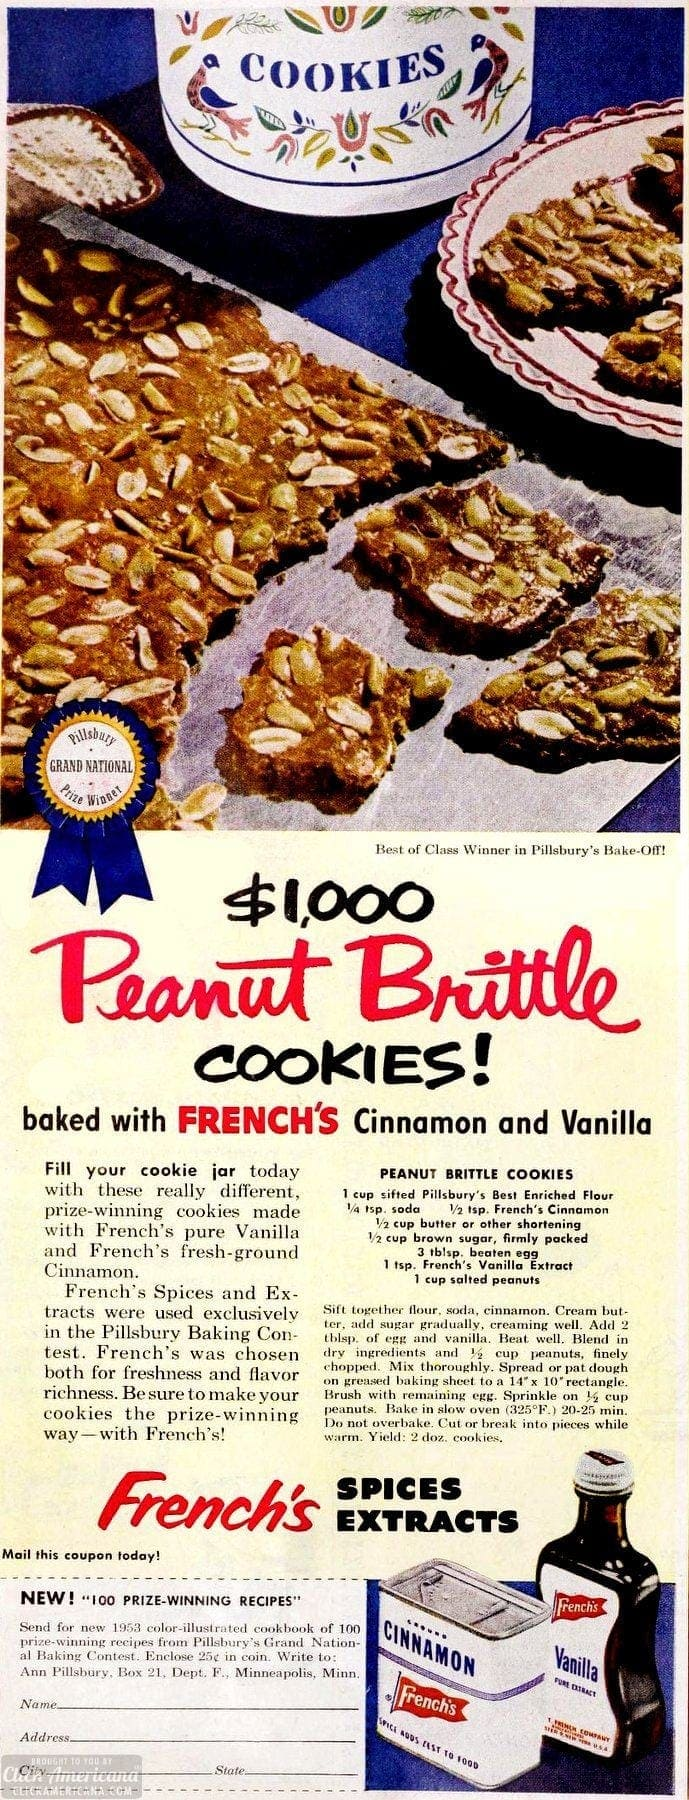 Peanut brittle cookies recipe